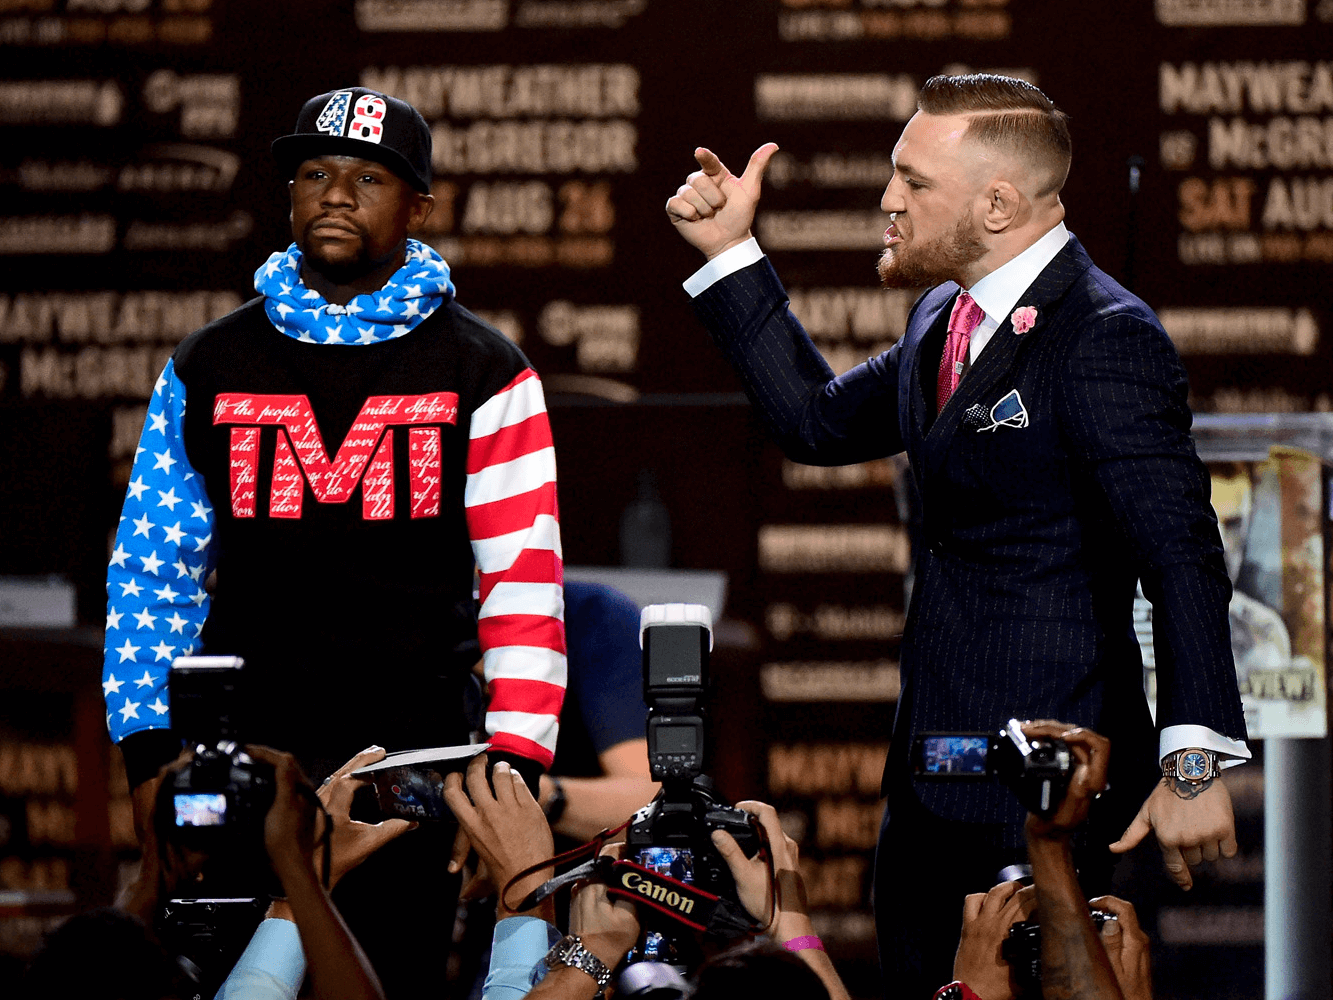 Mayweather vs McGregor: Who Would You Rather Be?